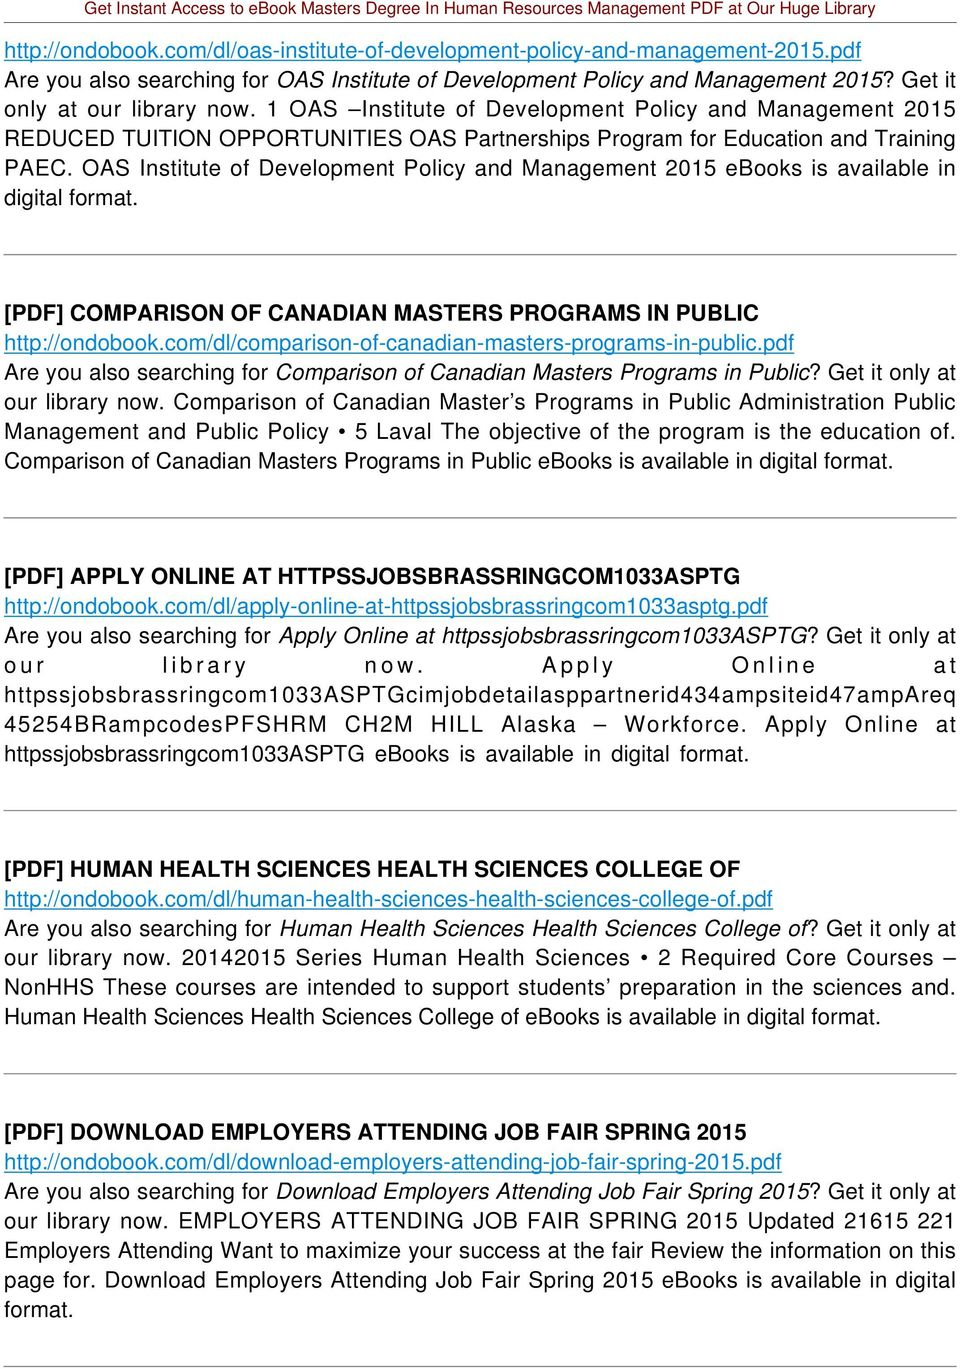 OAS Institute of Development Policy and Management 2015 ebooks is available in [PDF] COMPARISON OF CANADIAN MASTERS PROGRAMS IN PUBLIC http://ondobook.